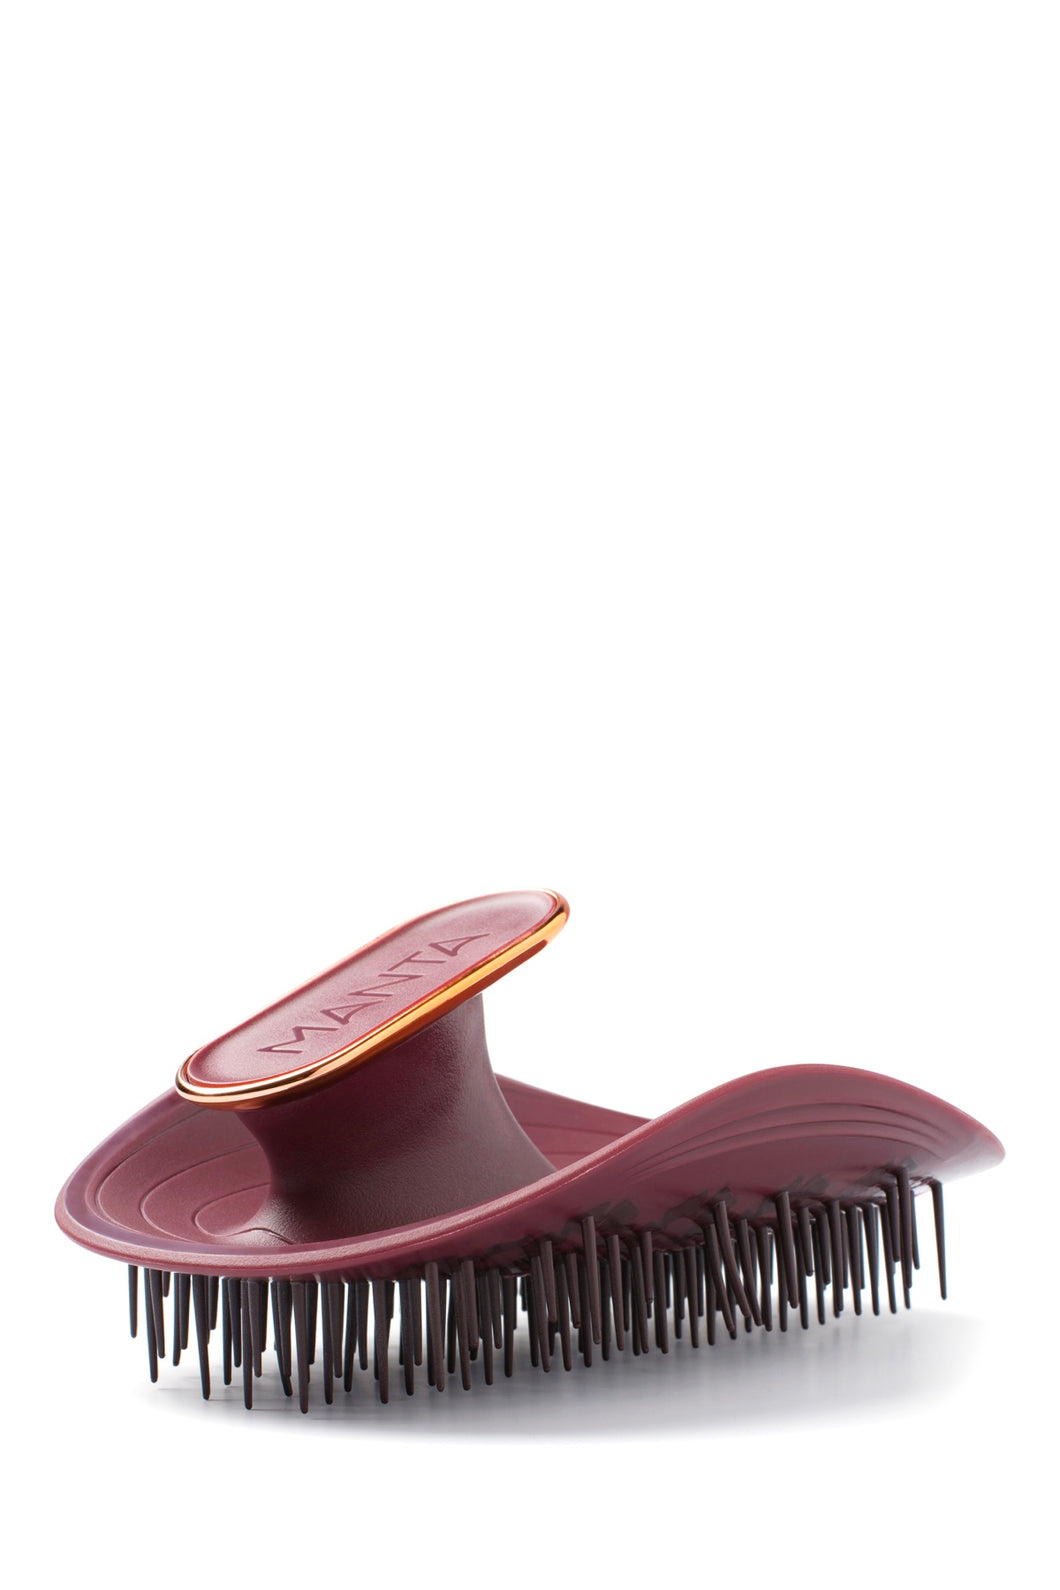 Manta Healthy Hairbrush Burgundy